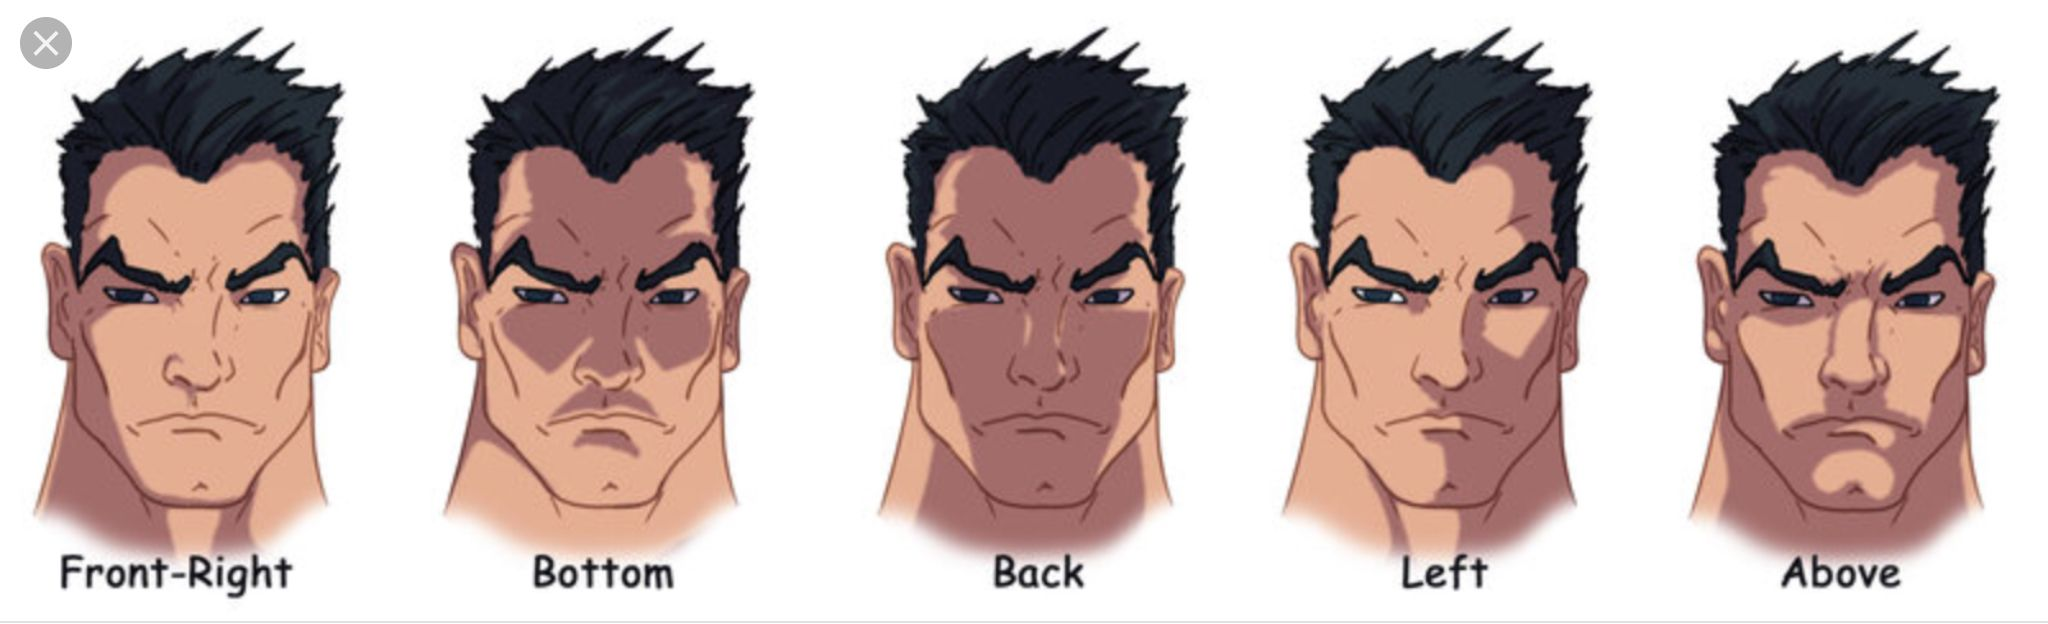 Face Shading Reference Shading Techniques Character Design Human Drawing